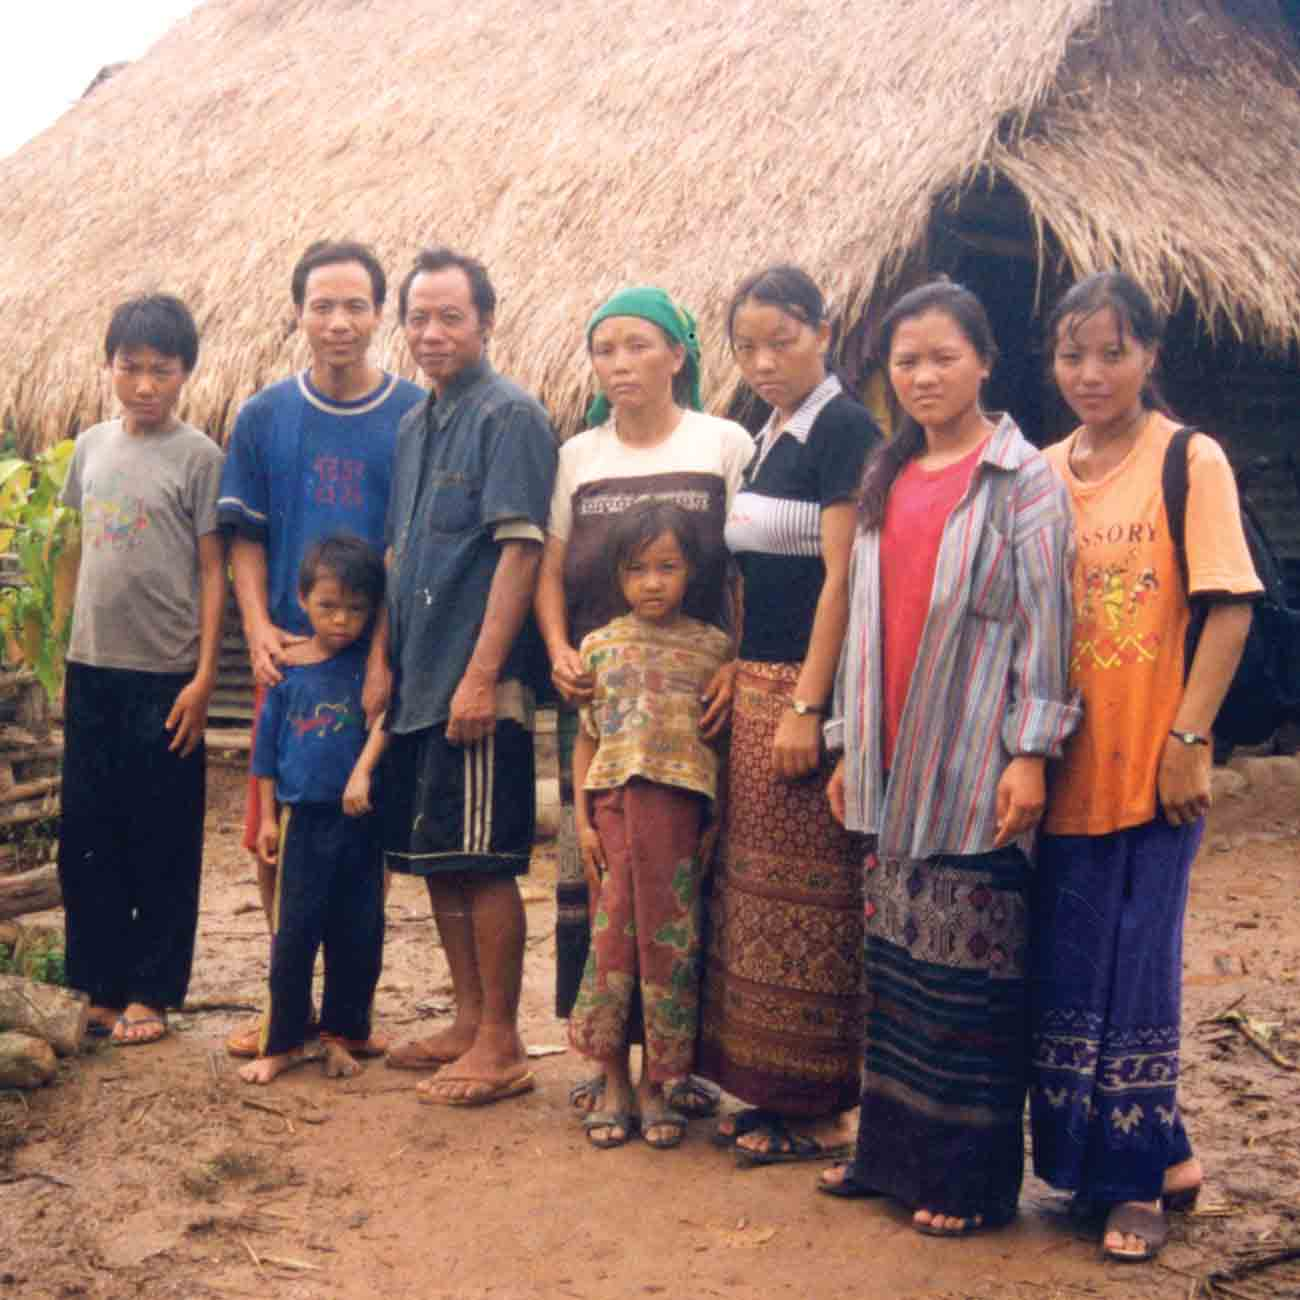 New believers in Analu's village were told to give up their religion or get out.